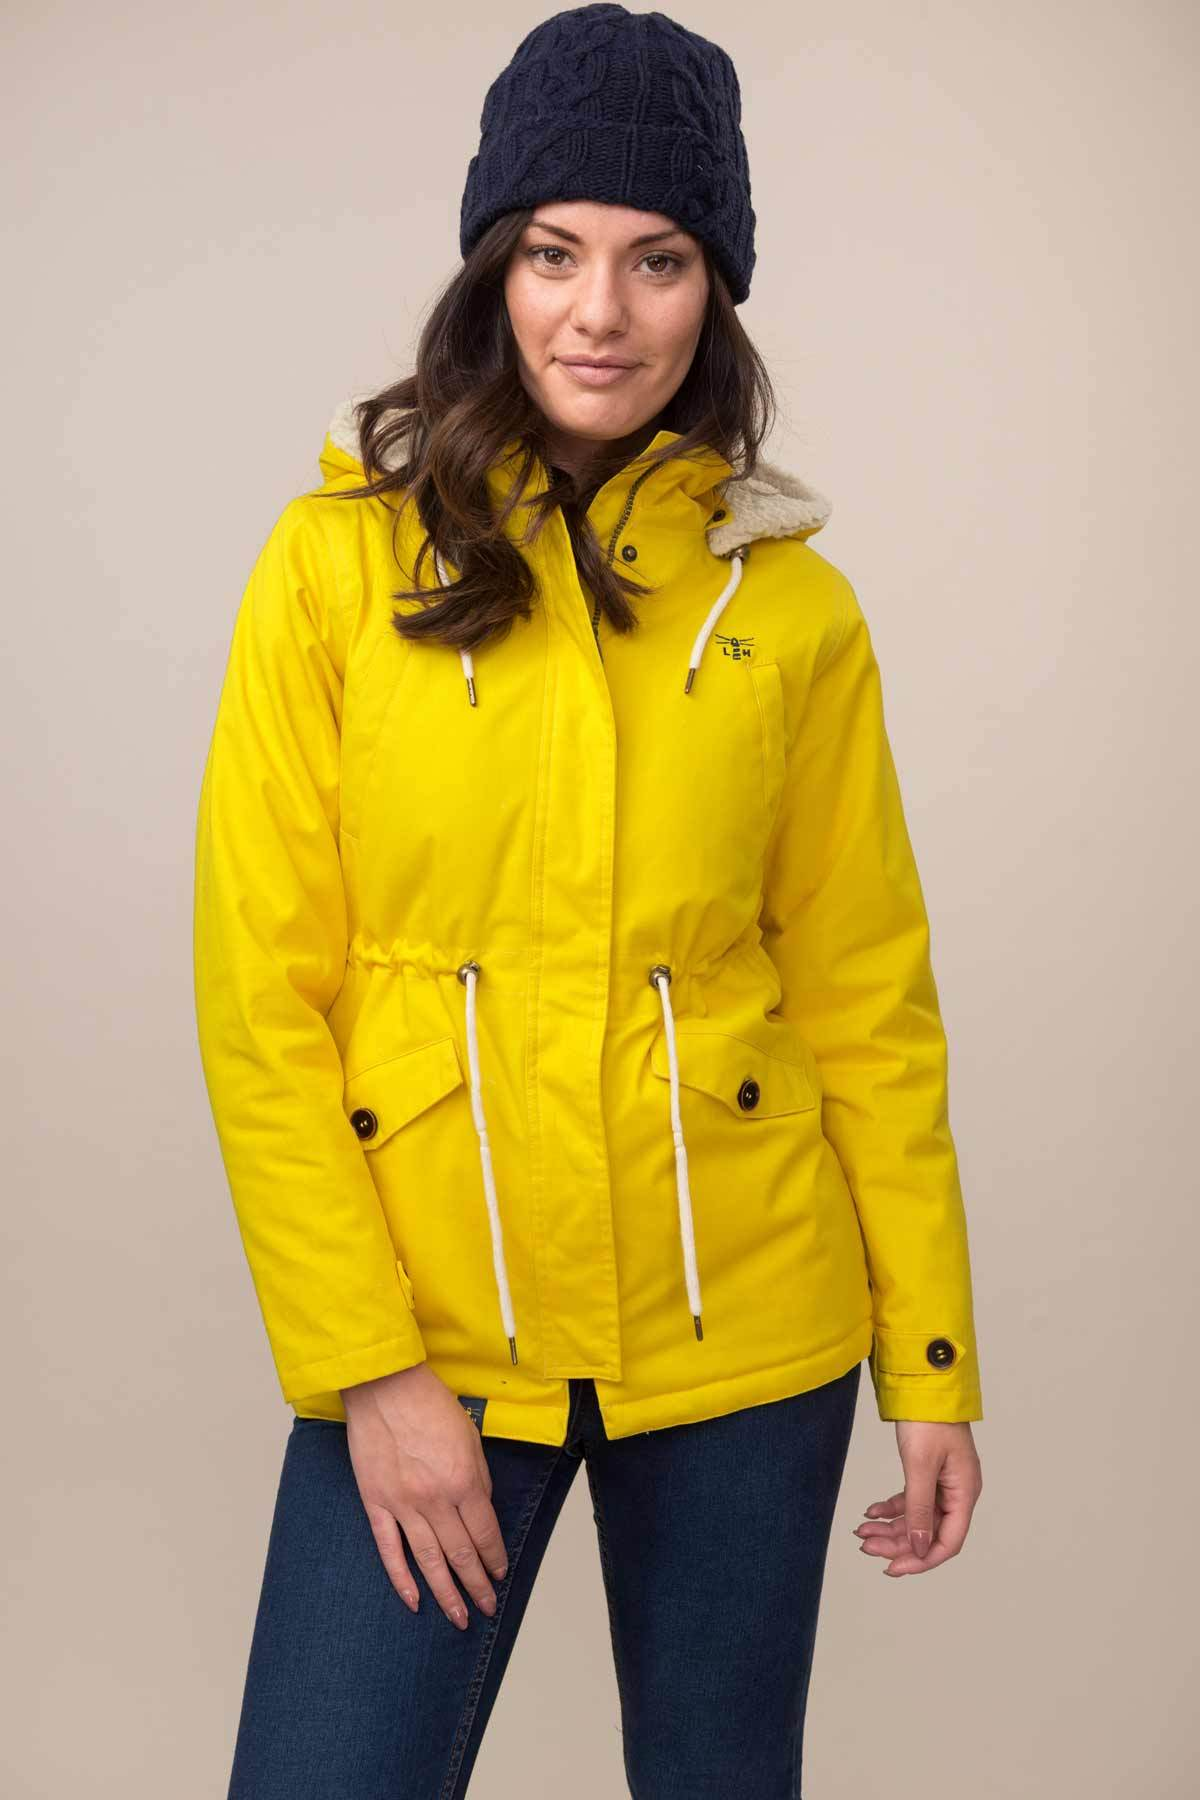 Lighthouse Raven - Womens Padded Raincoat - Yellow